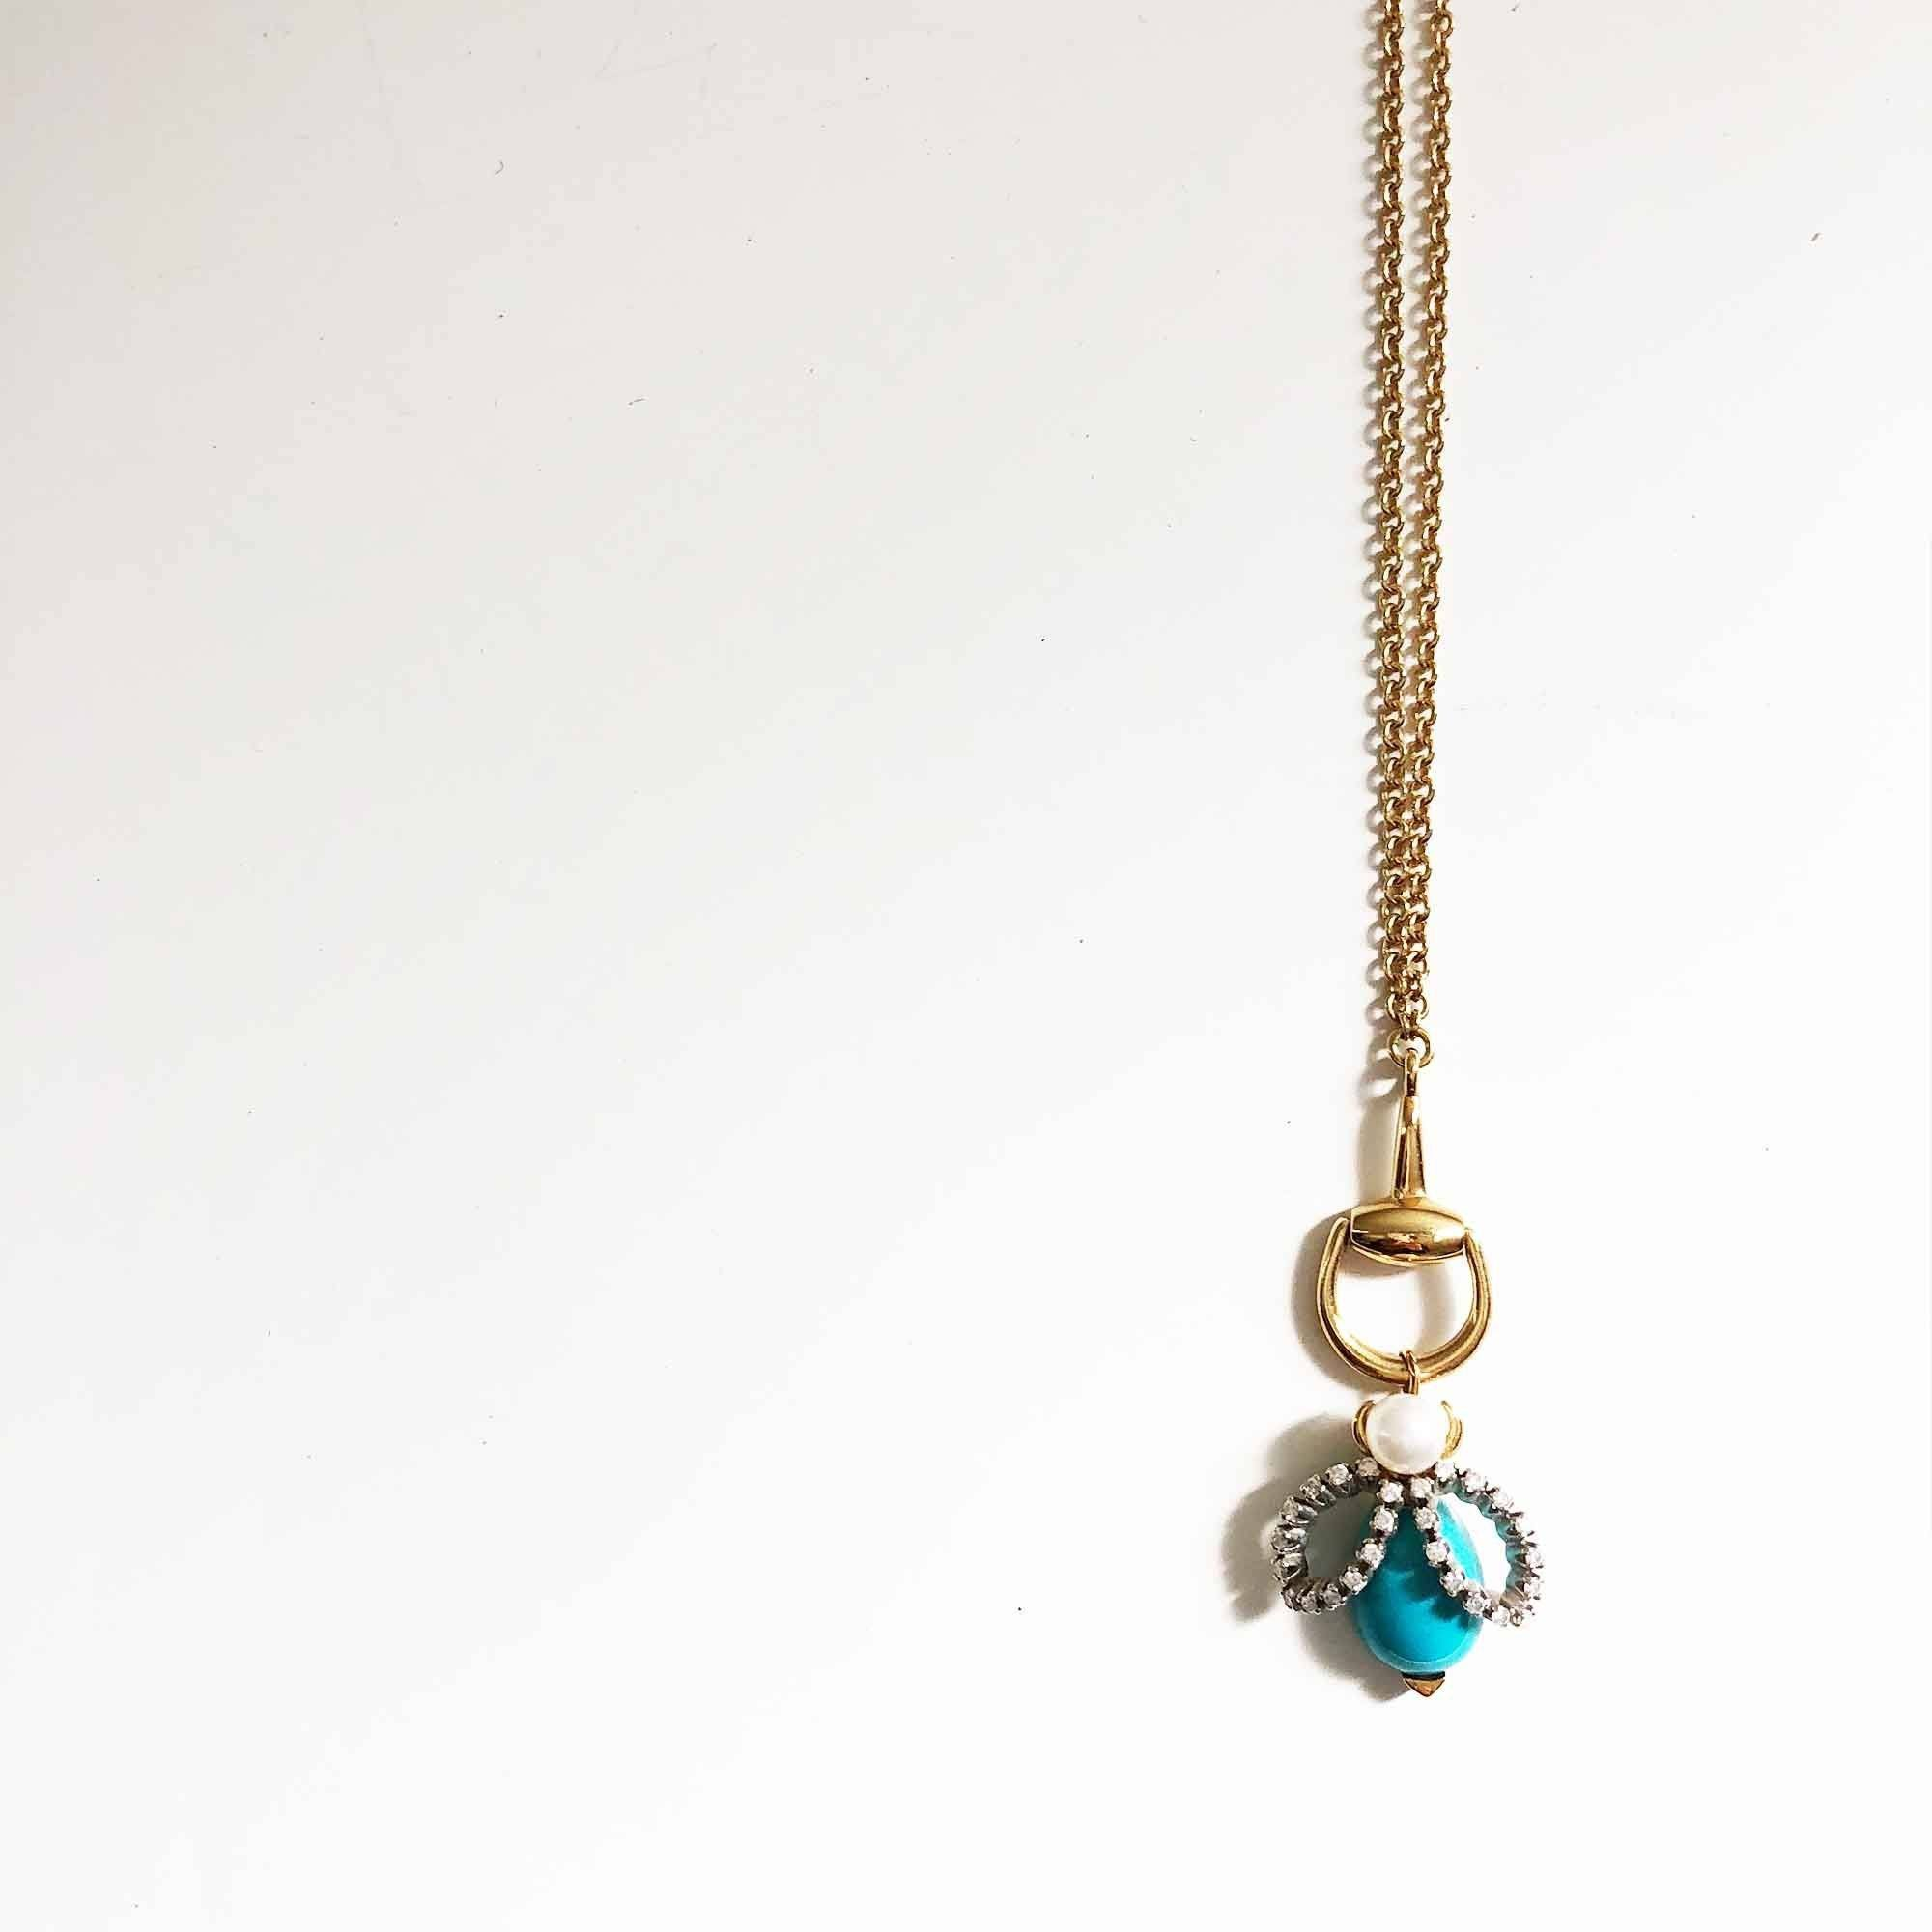 Gucci 18 K Gold Pearl Diamond Turquoise Horsebit Ladybug Necklace